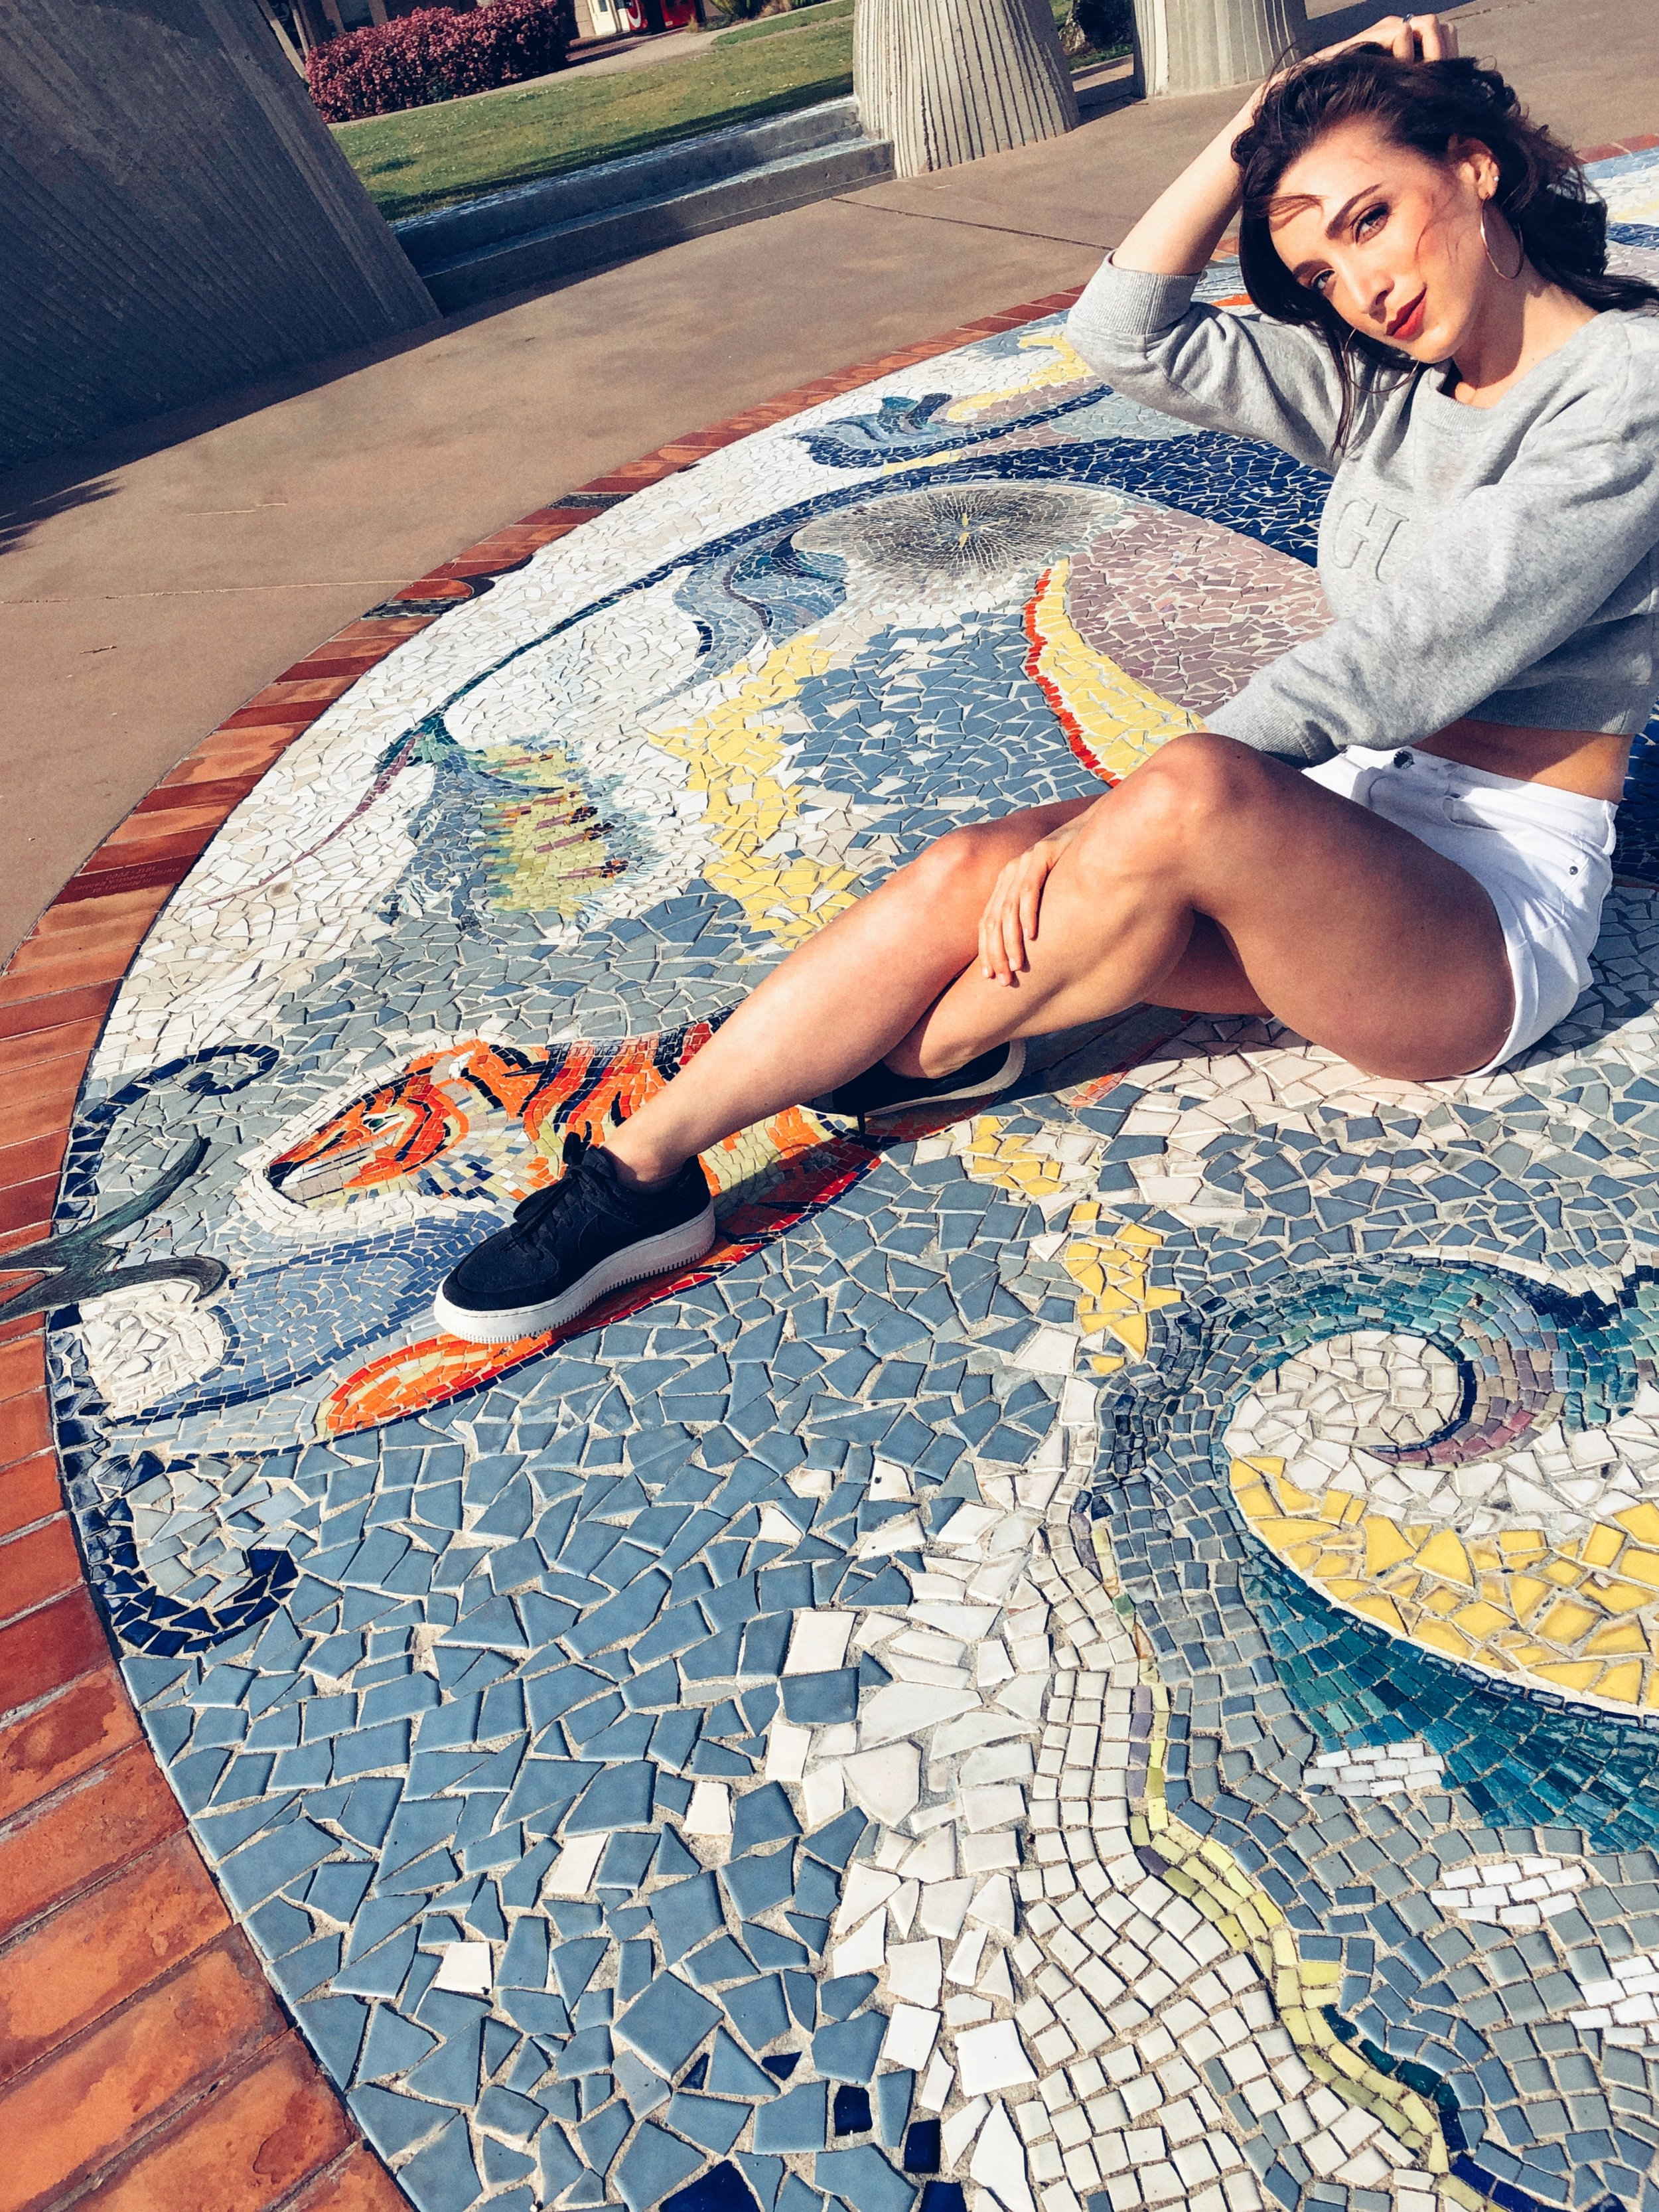 Nike Air Force 1 Sage Low and Guess Cropped Sweater. Mosaic on Shelter Island in San Diego, California.